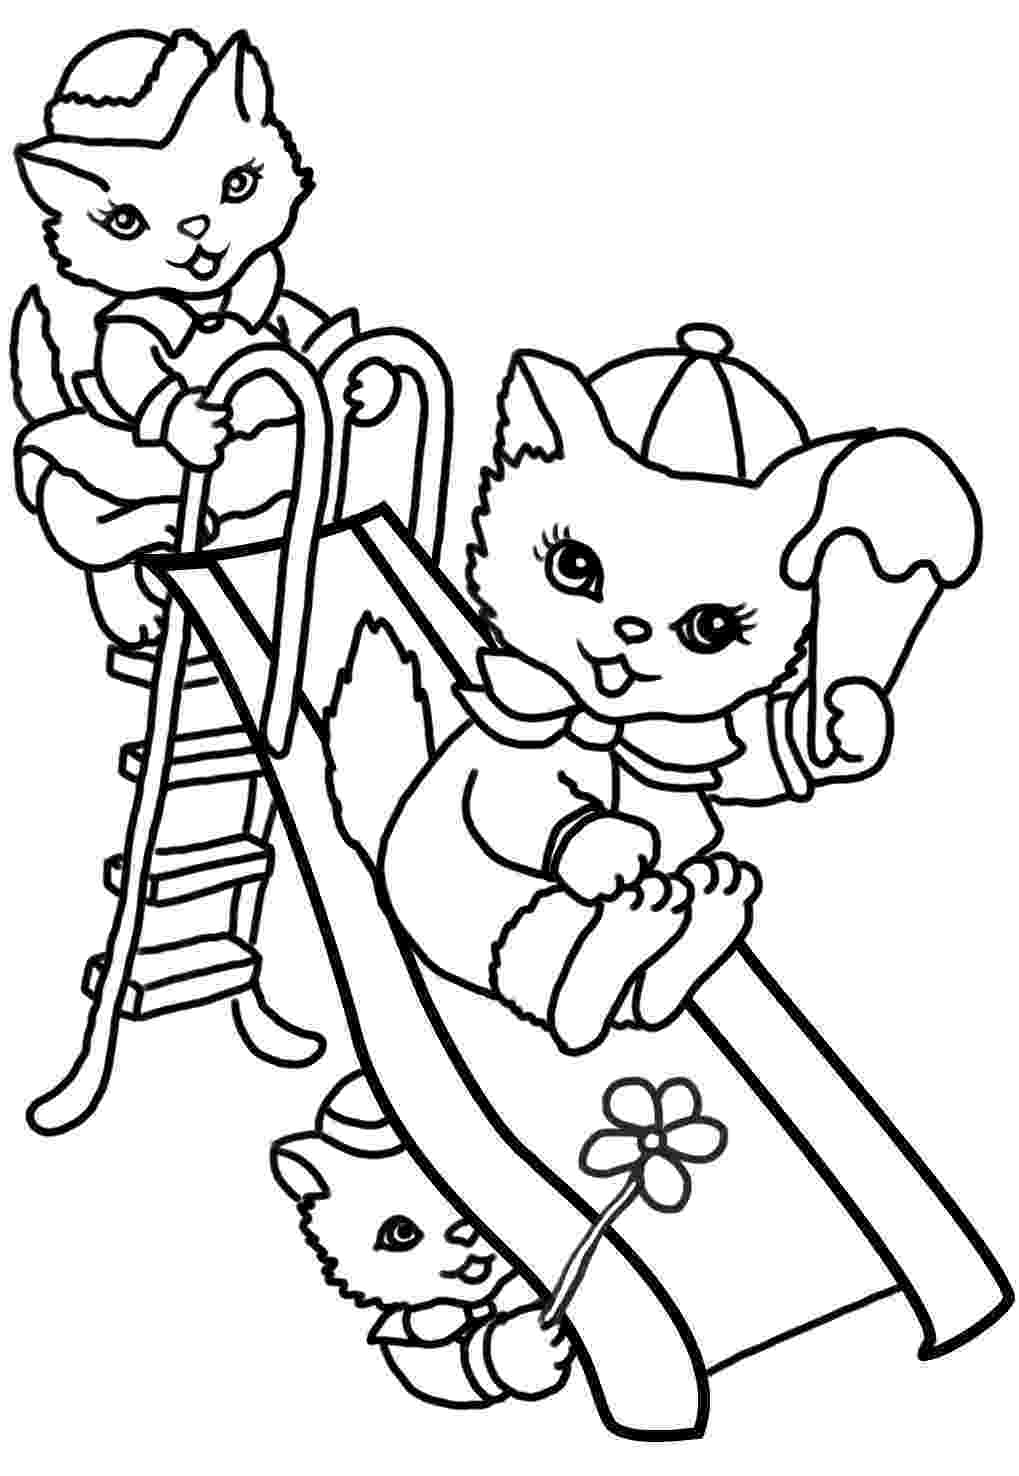 summer coloring page summer coloring pages for kids print them all for free page coloring summer